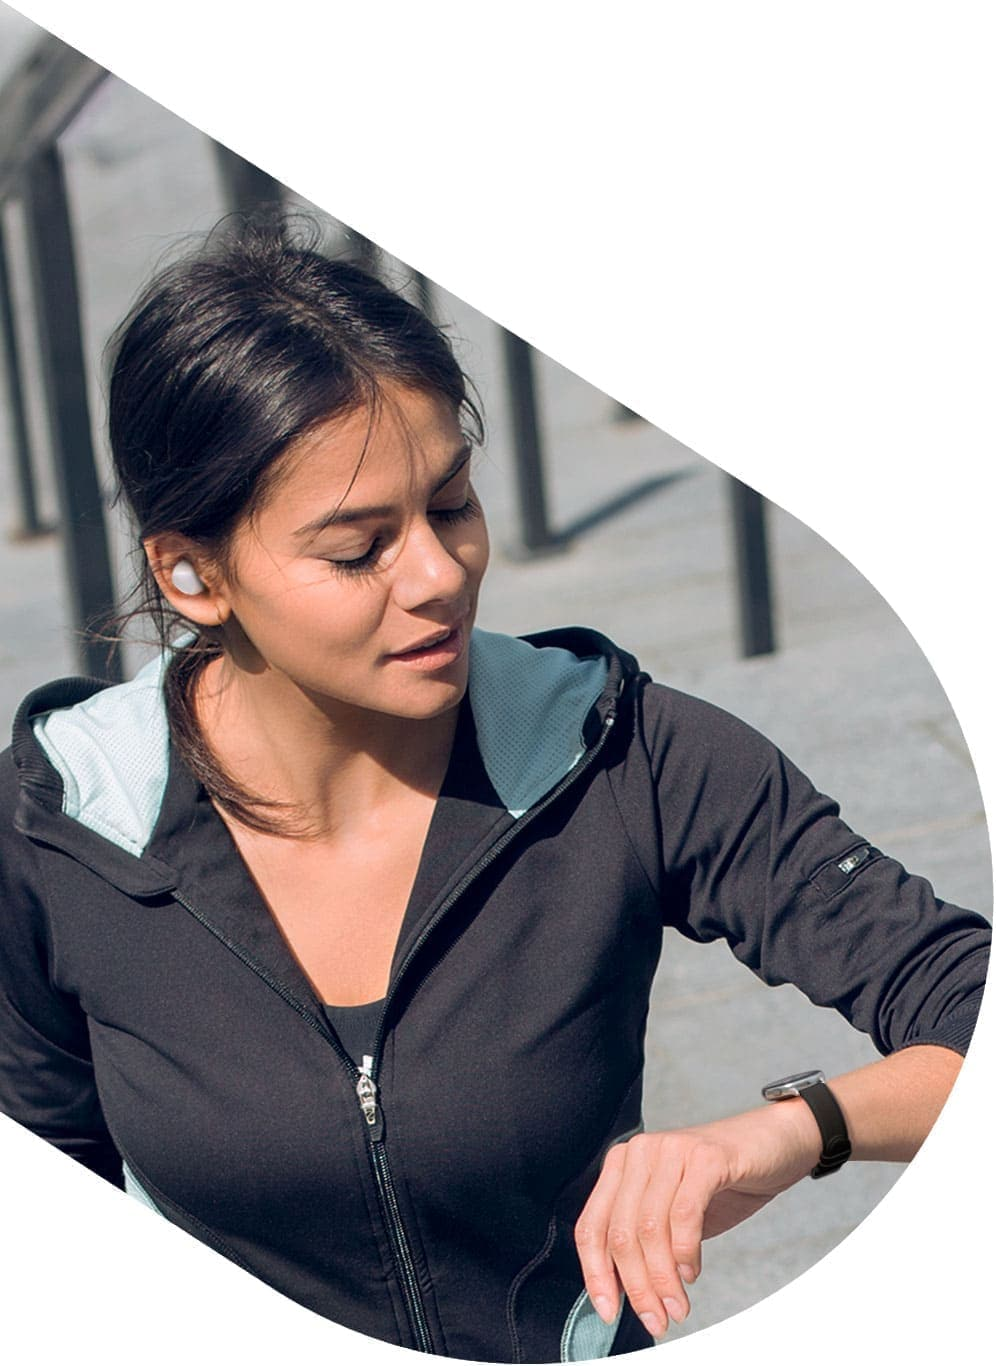 A woman out on a run takes an incoming phone call on a black Galaxy Watch active2 on her wrist, followed by another woman who uses a Galaxy Watch active2 in pink on her wrist to listen to music while engaged in outdoor activities.